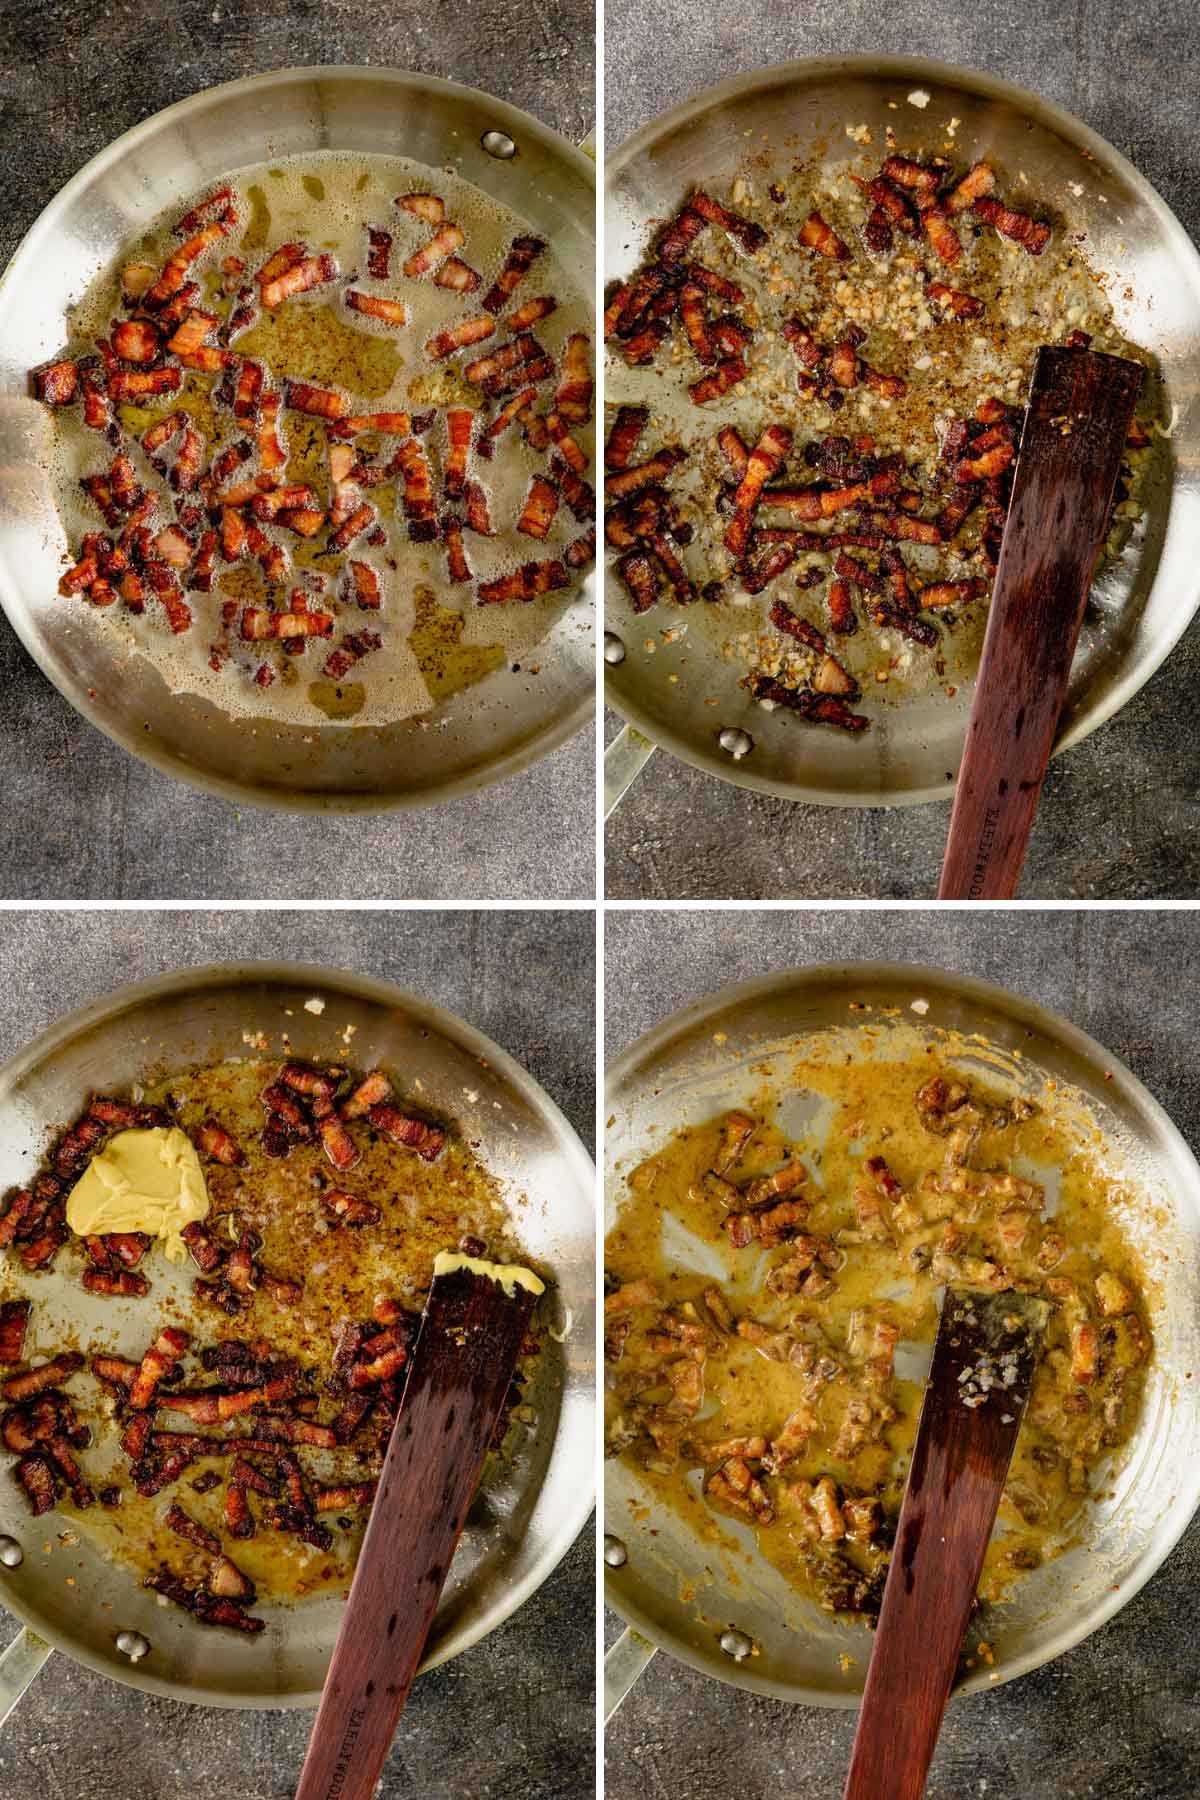 grid of four images showing how to crisp bacon lardons, cooking shallots with lardons, adding dijon and making a warm bacon vinaigrette